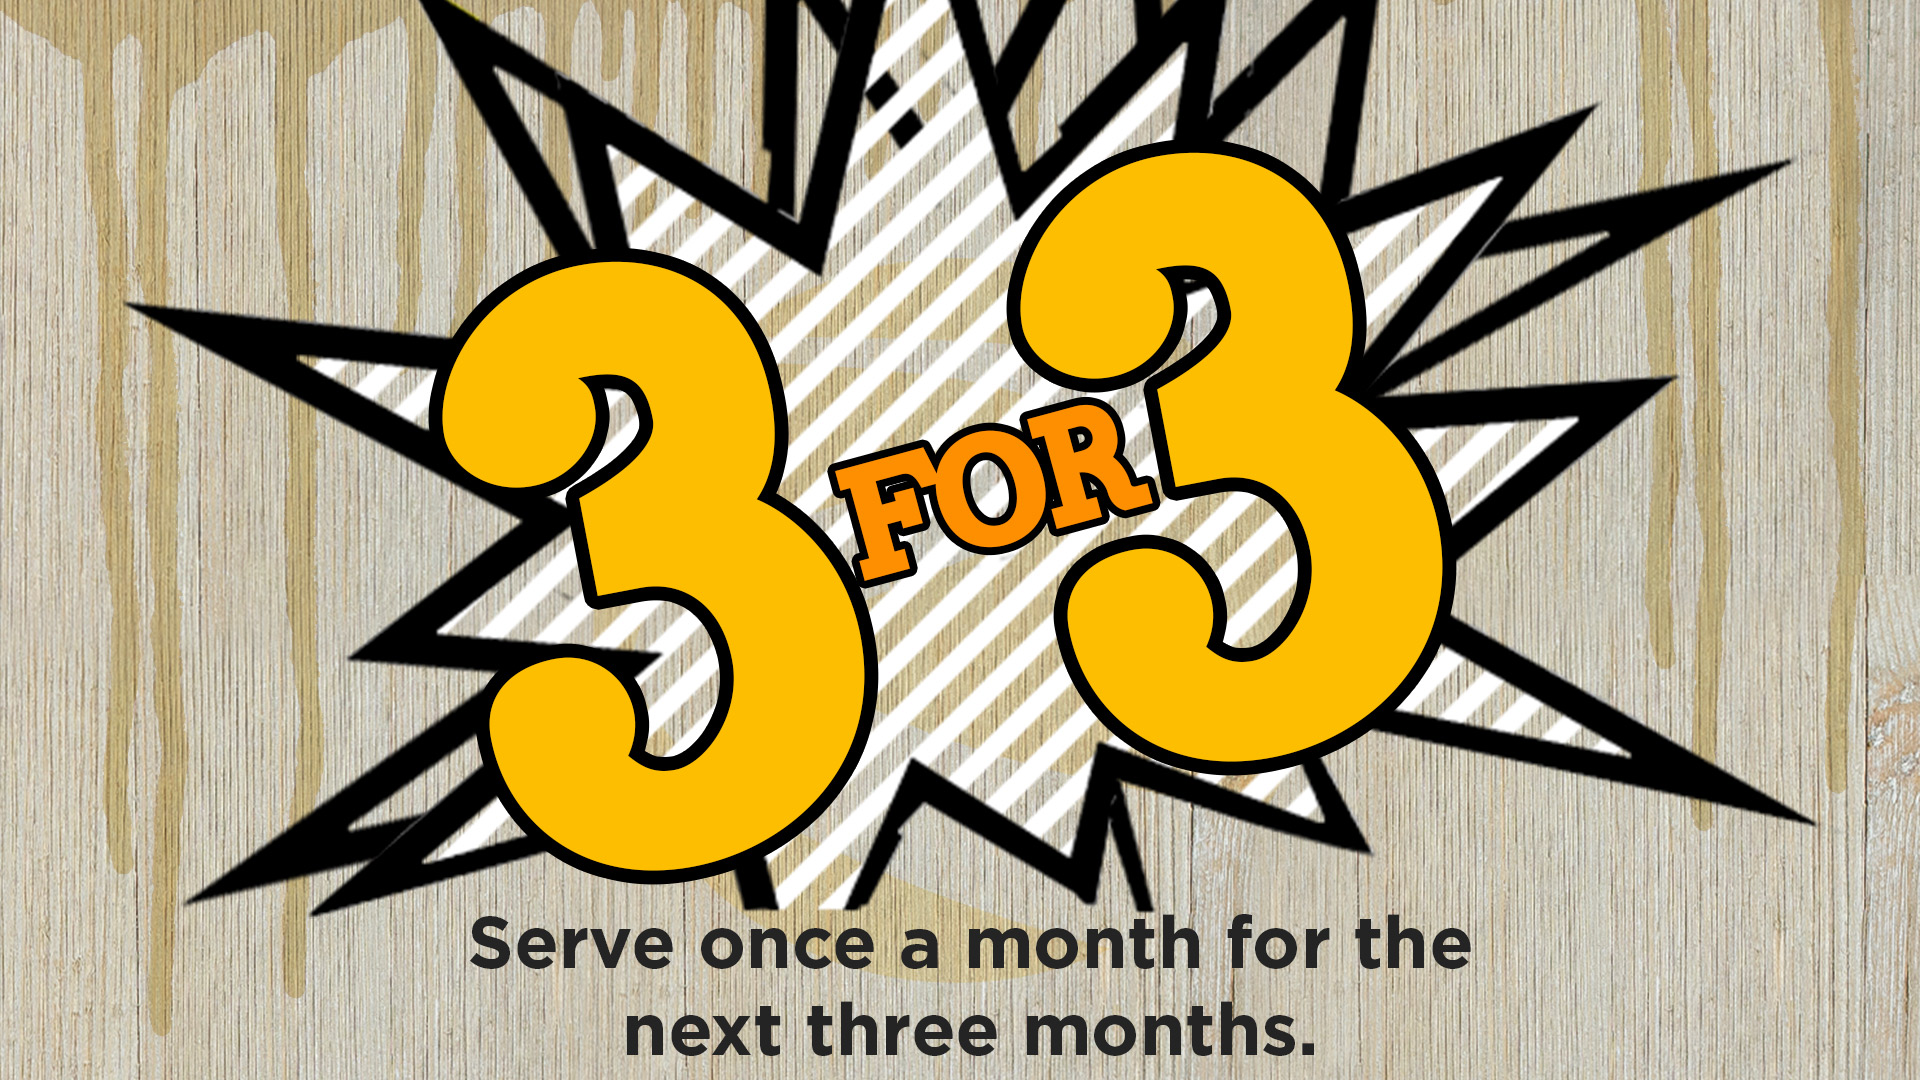 Serve 3 times in 3 months